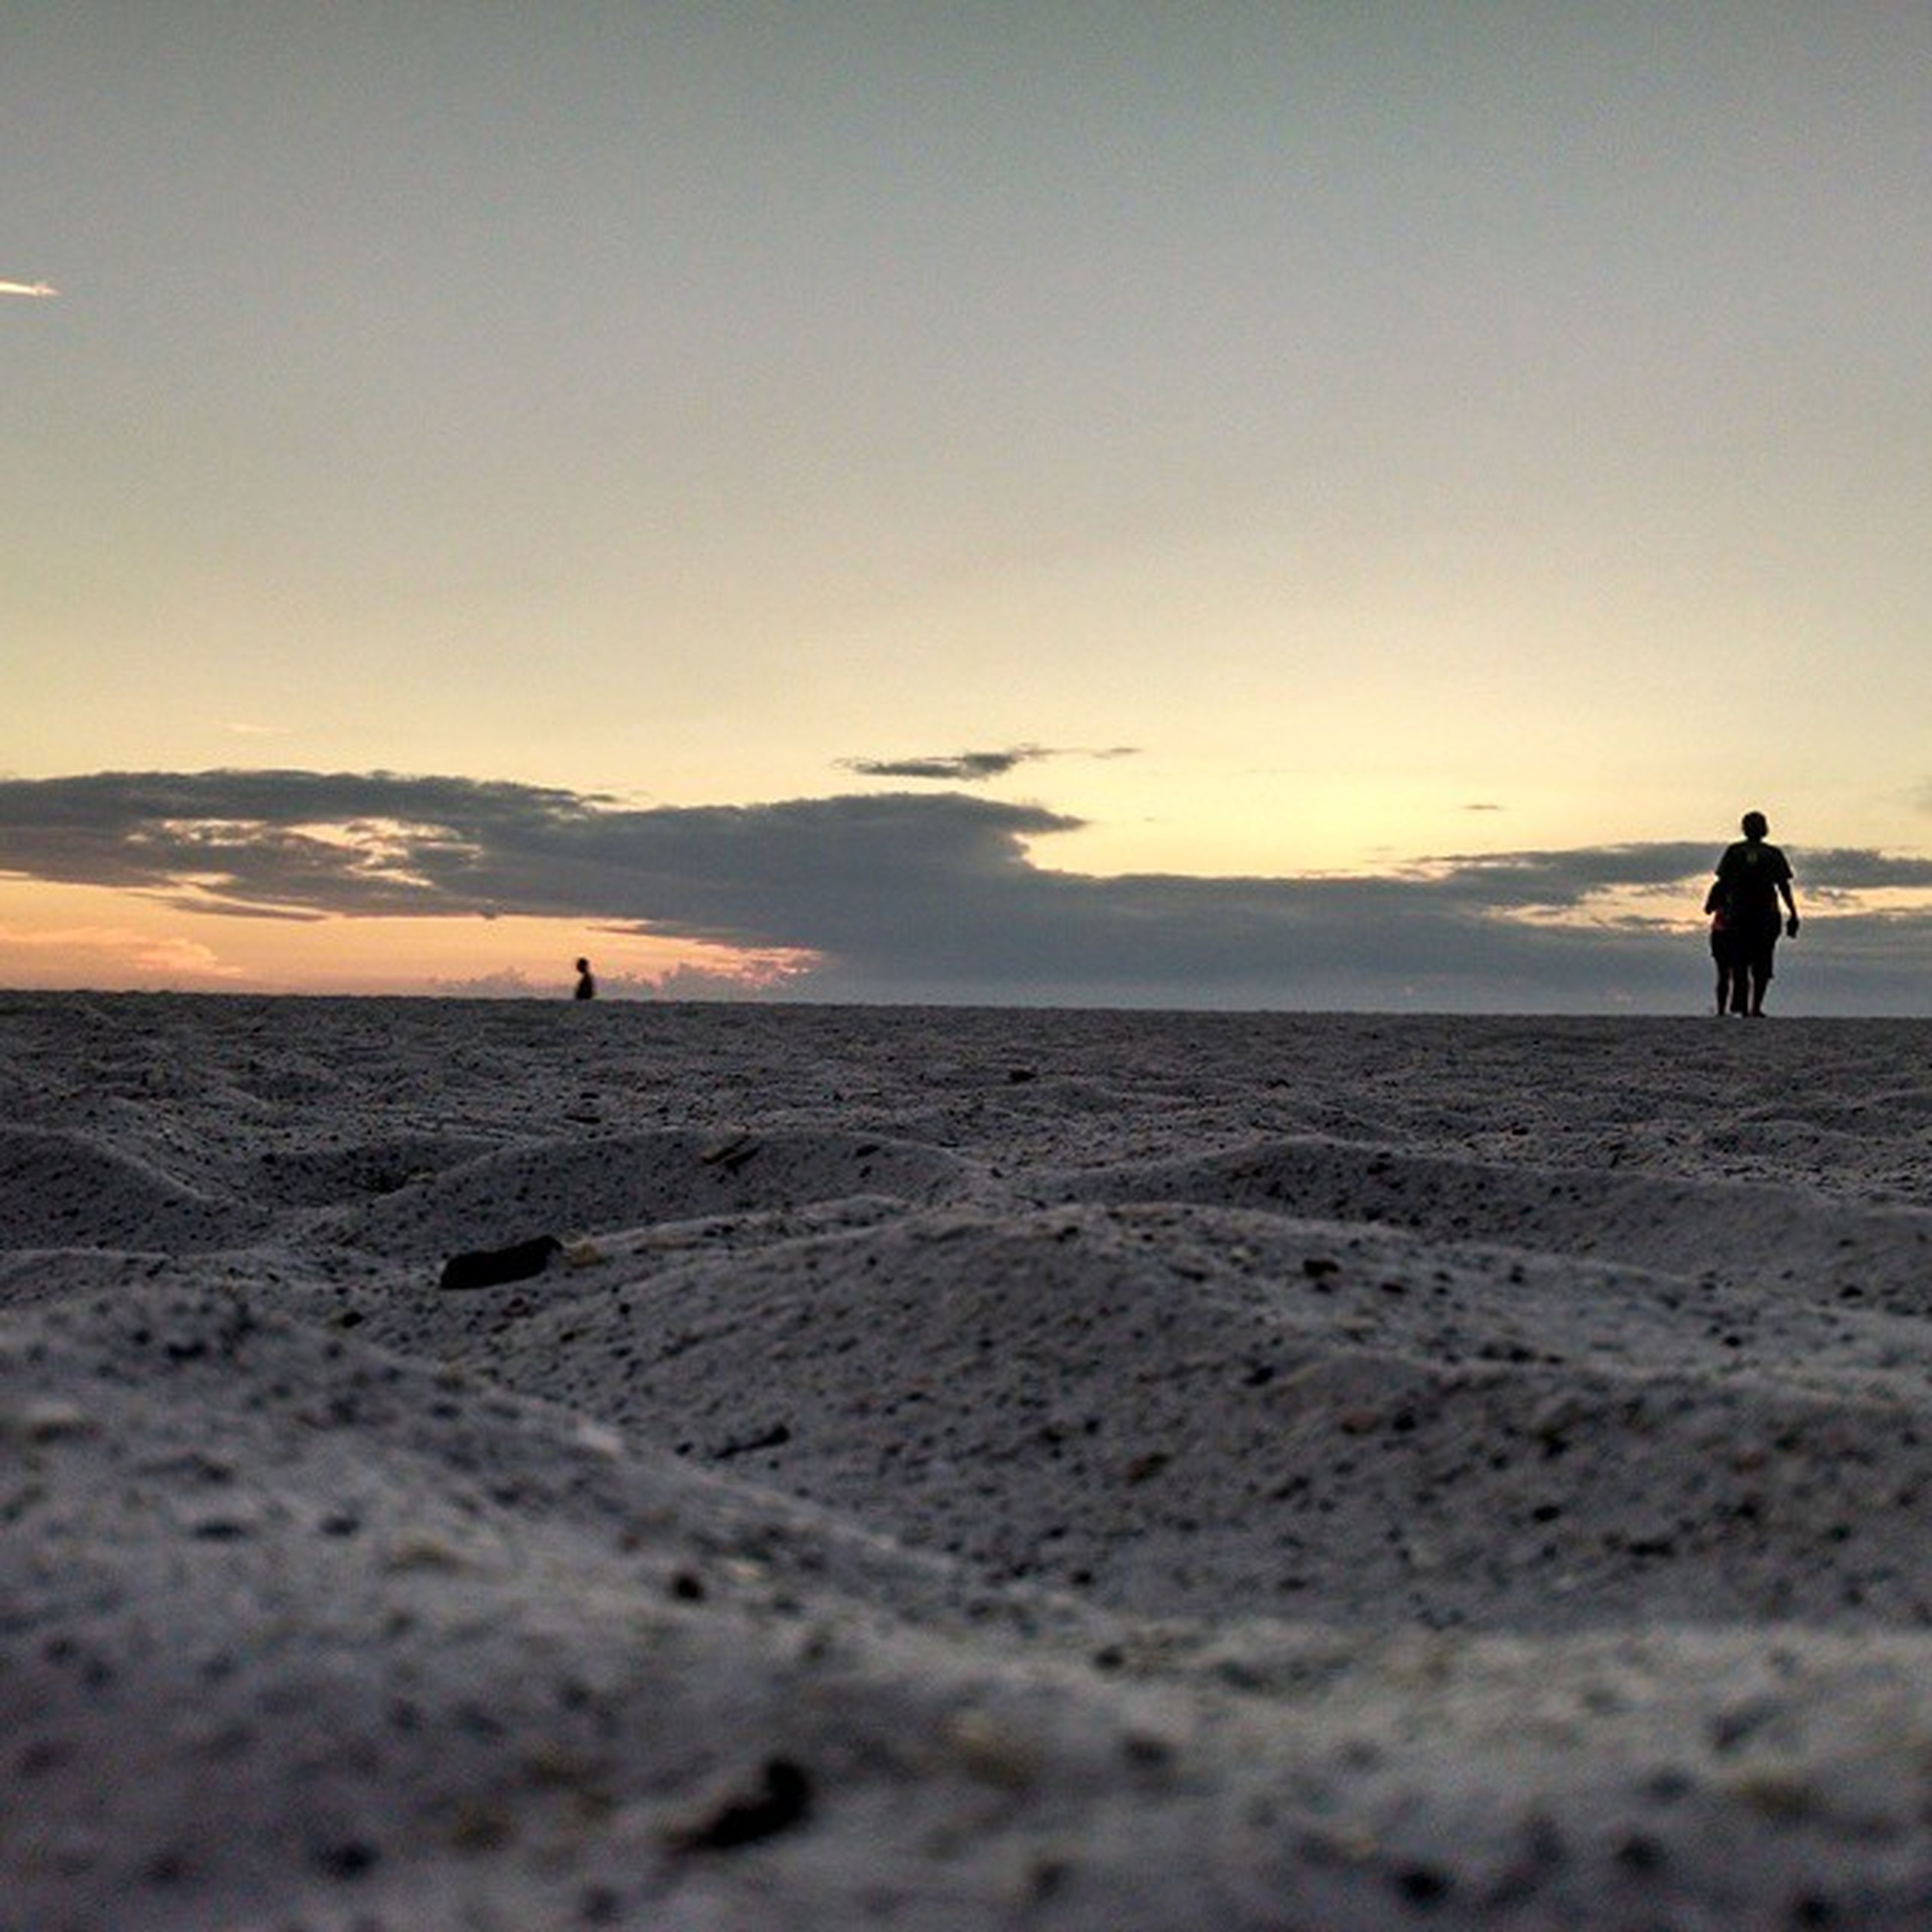 lifestyles, leisure activity, beach, men, silhouette, sunset, sky, sea, full length, walking, sand, horizon over water, tranquil scene, person, shore, vacations, standing